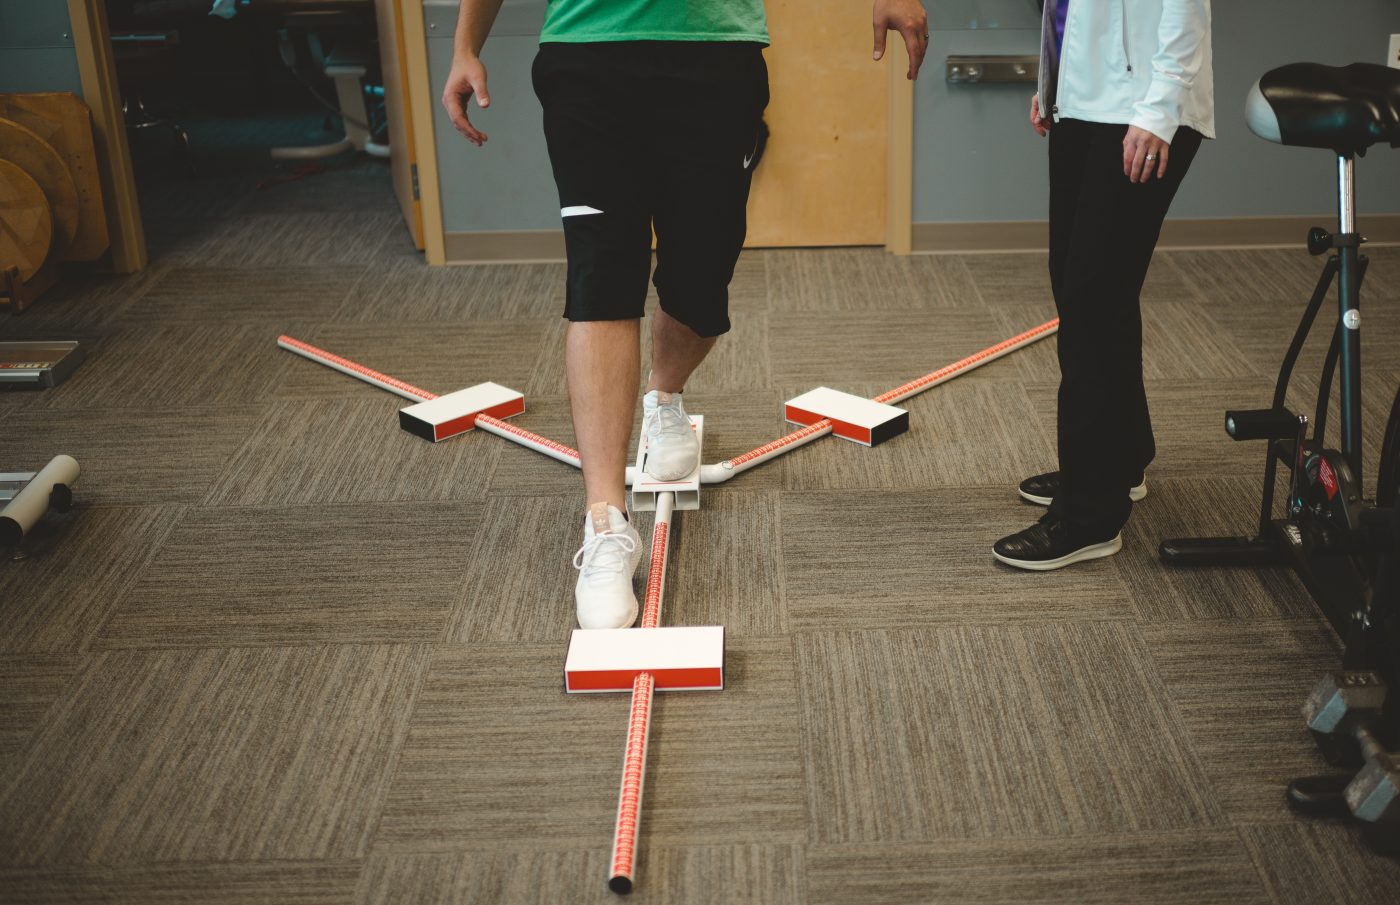 athlete performing Y balance test